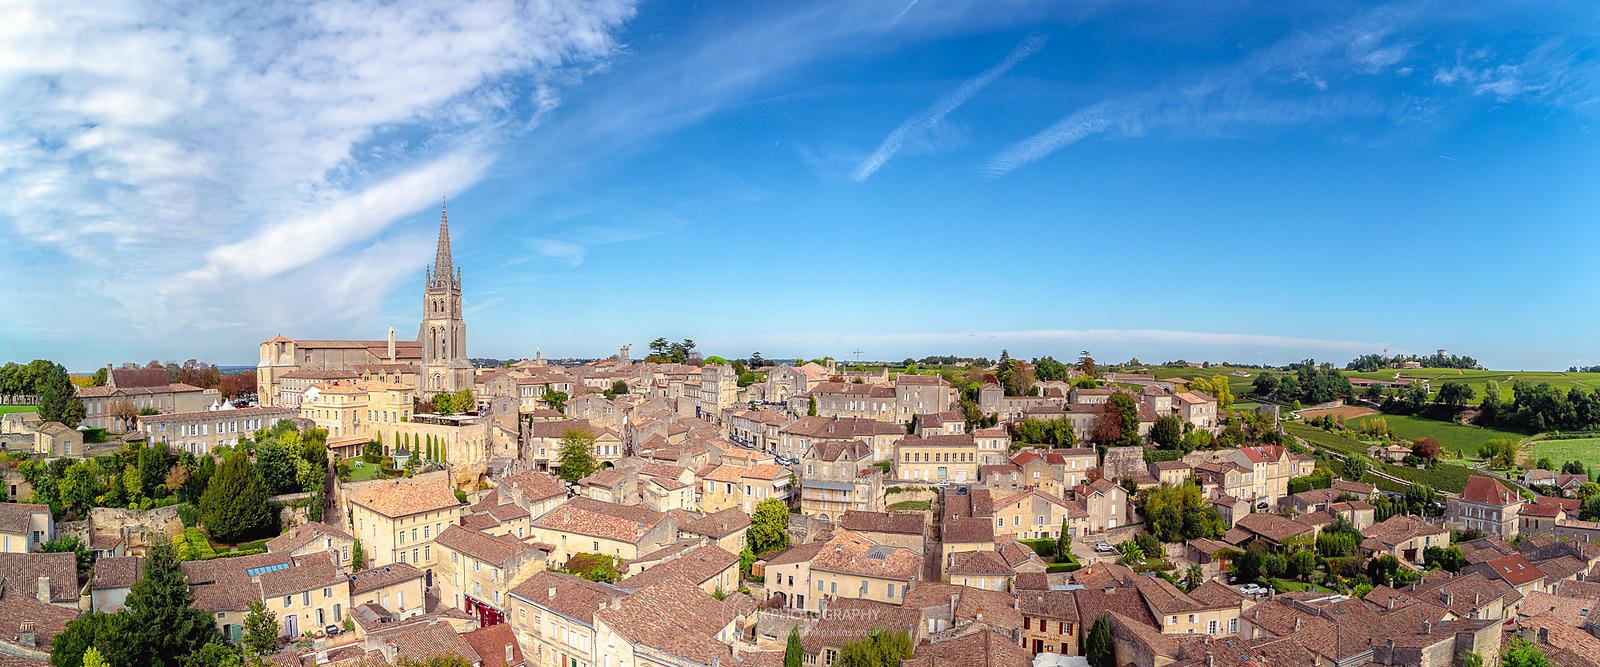 Saint-Émilion Panoramic